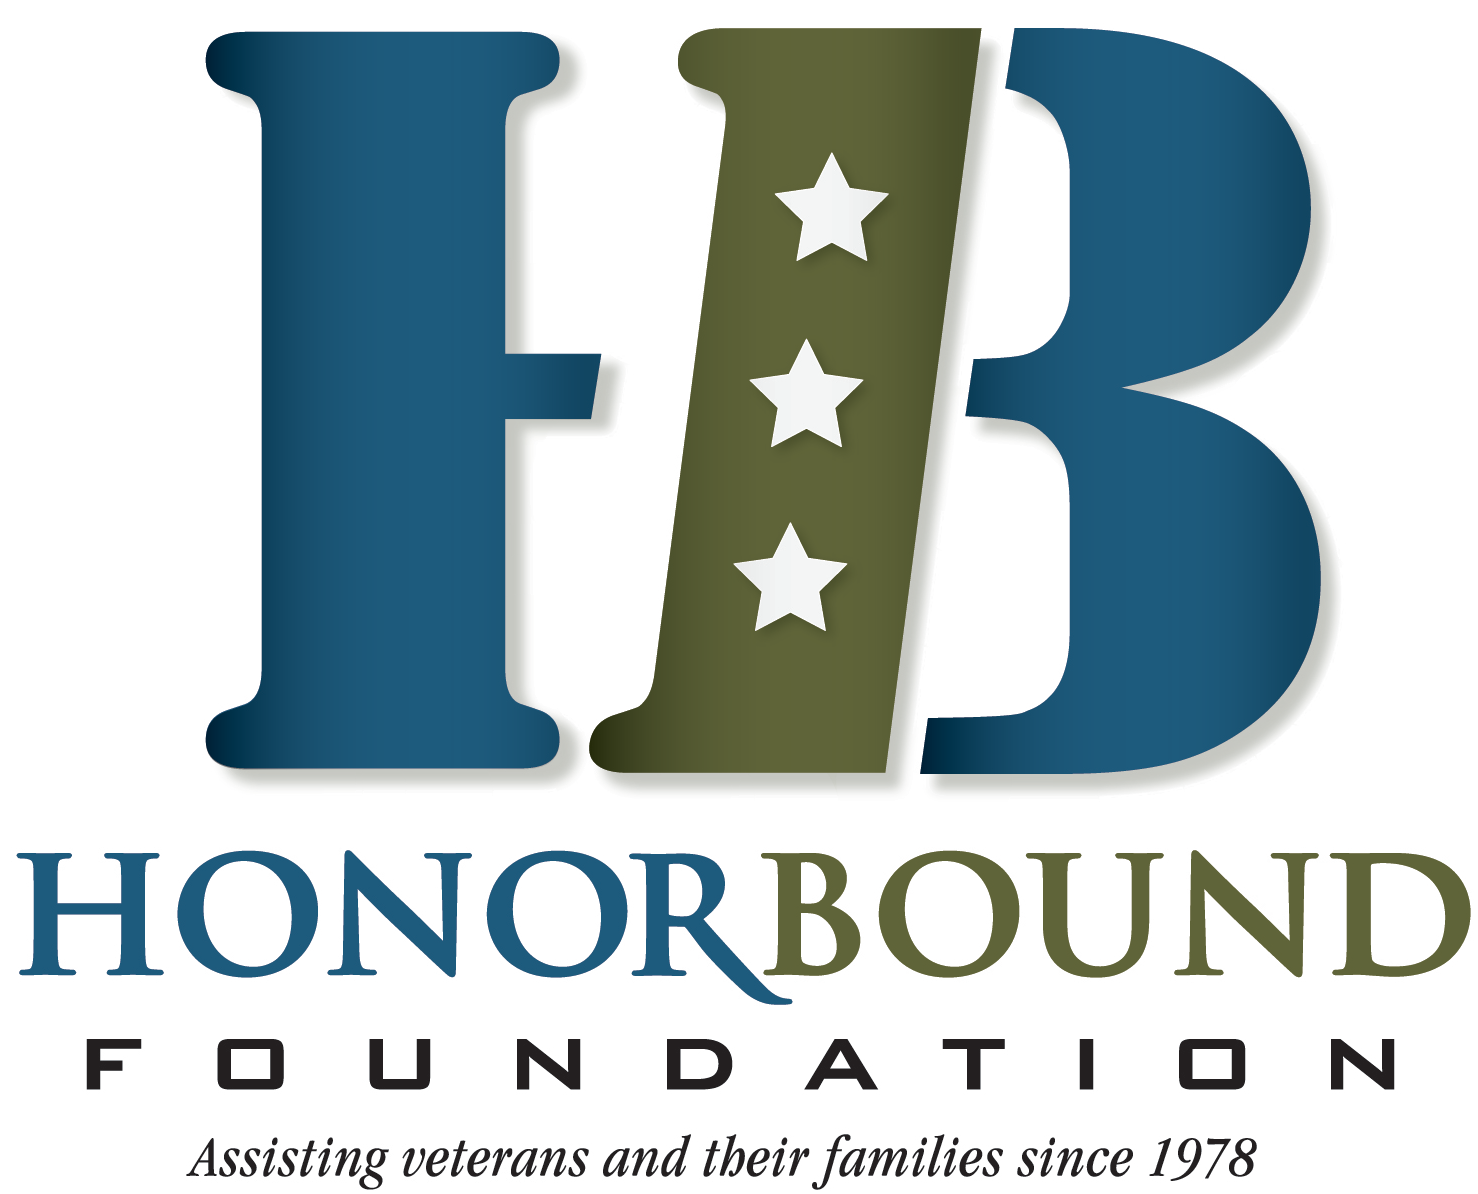 Car Donation Washington - HonorBound Foundation - DonatecarUSA.com